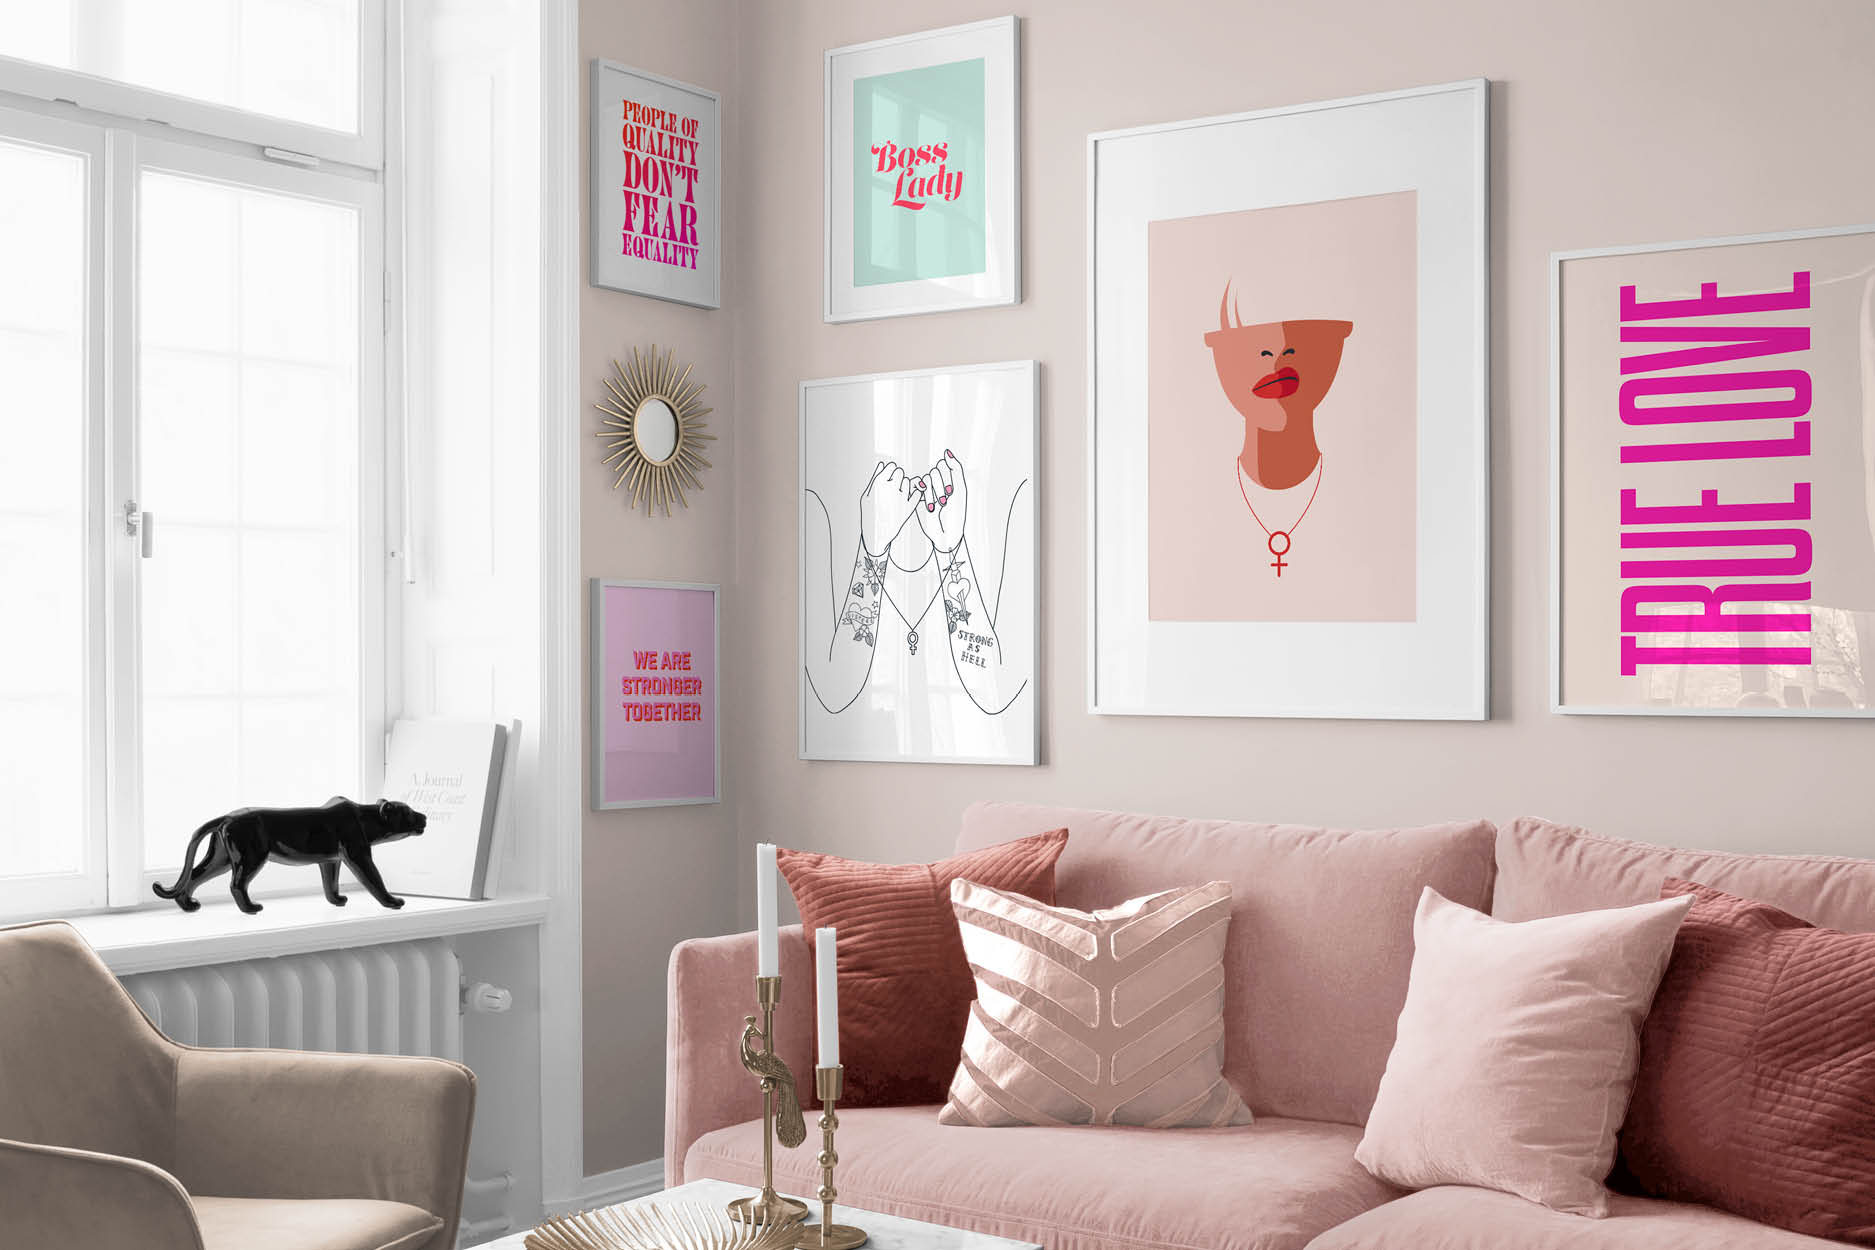 ON TREND: FUN AND PLAYFUL WALL ART